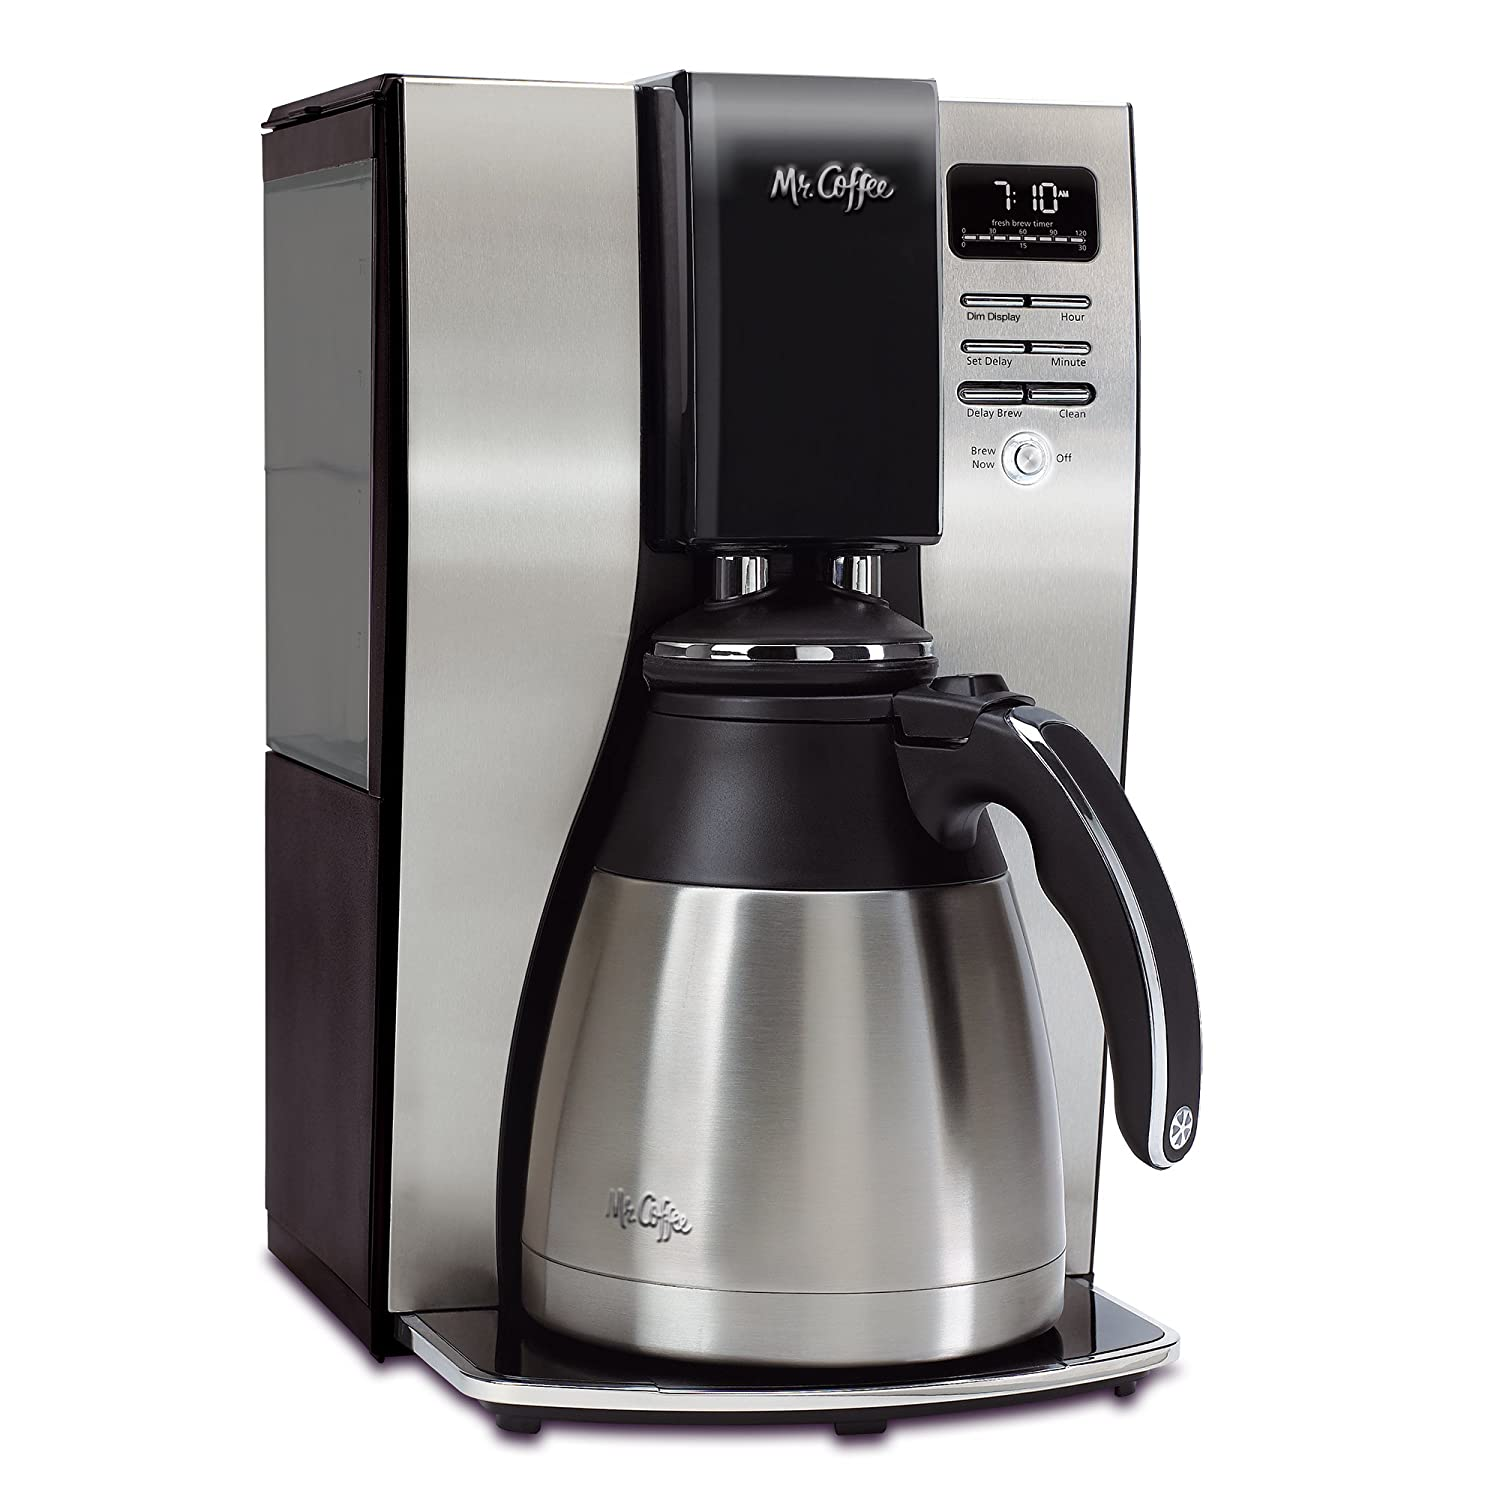 Mr Coffee Maker BVMC-PSTX91: The 10 Cup Model for a Fresh Concoction